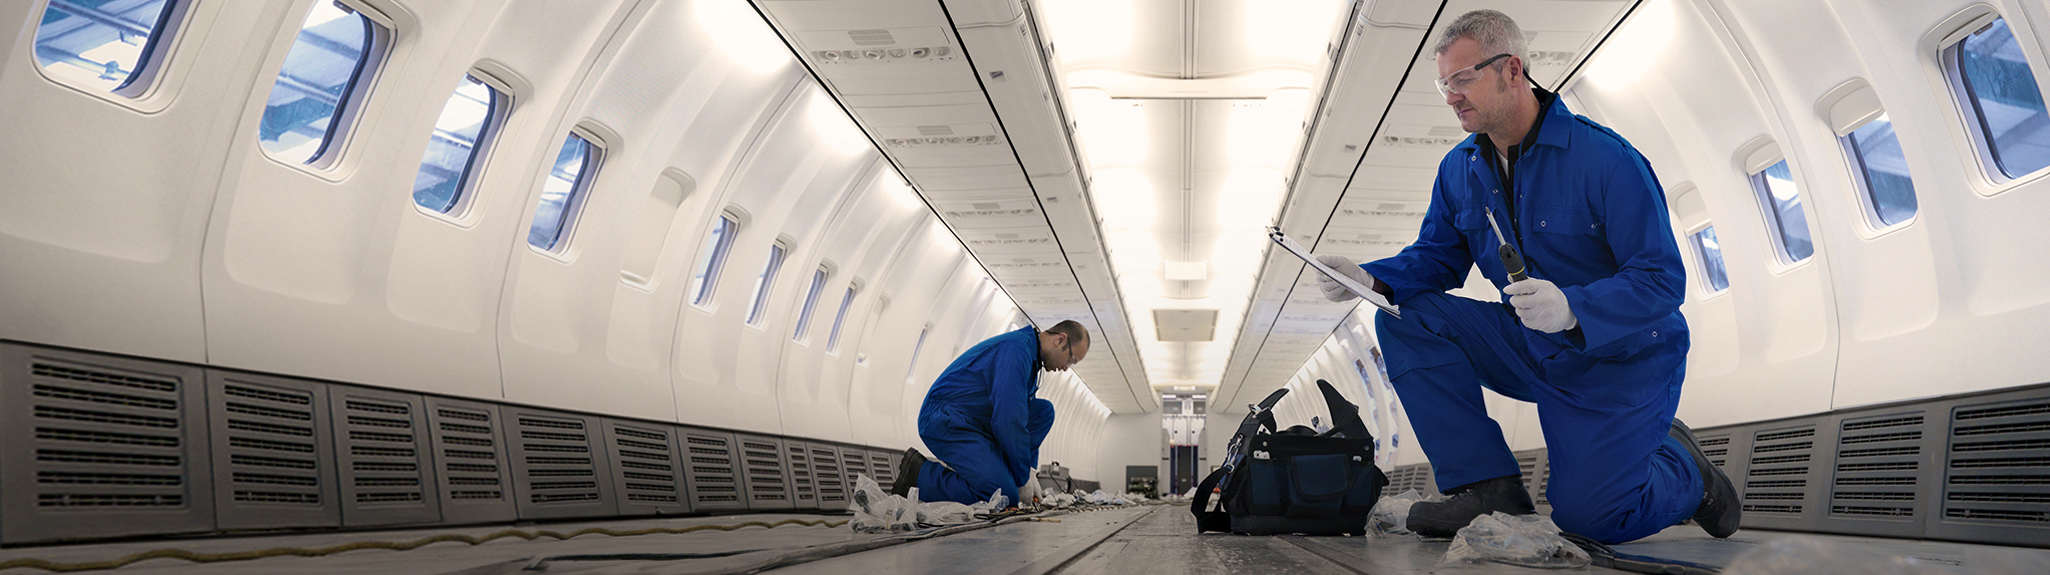 Roush aerospace, engineers inspecting interior of aircraft